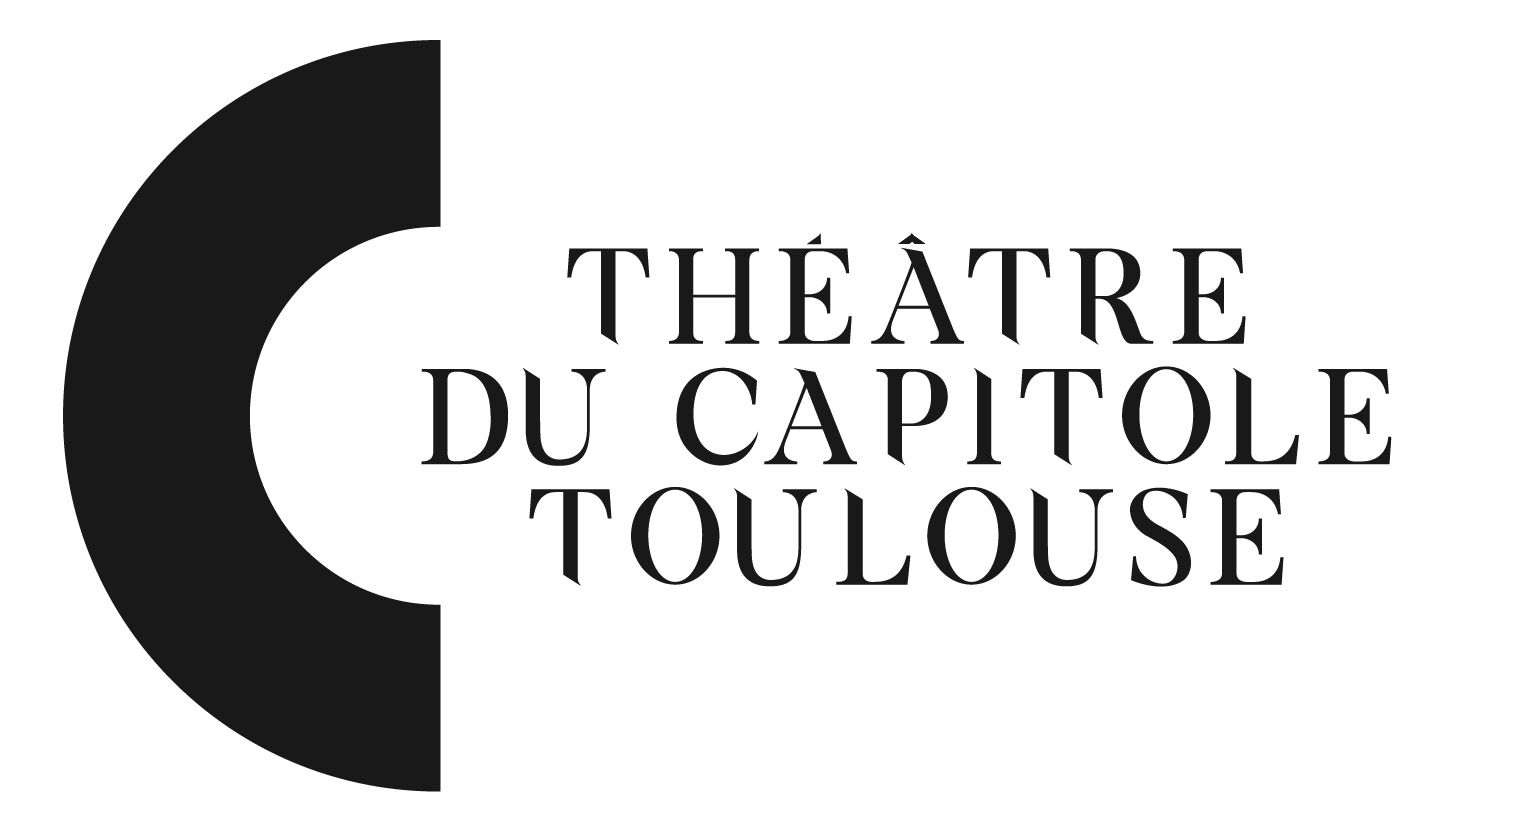 Costumes, wigs, make-up and technical inventory system for Théâtre du Capitole